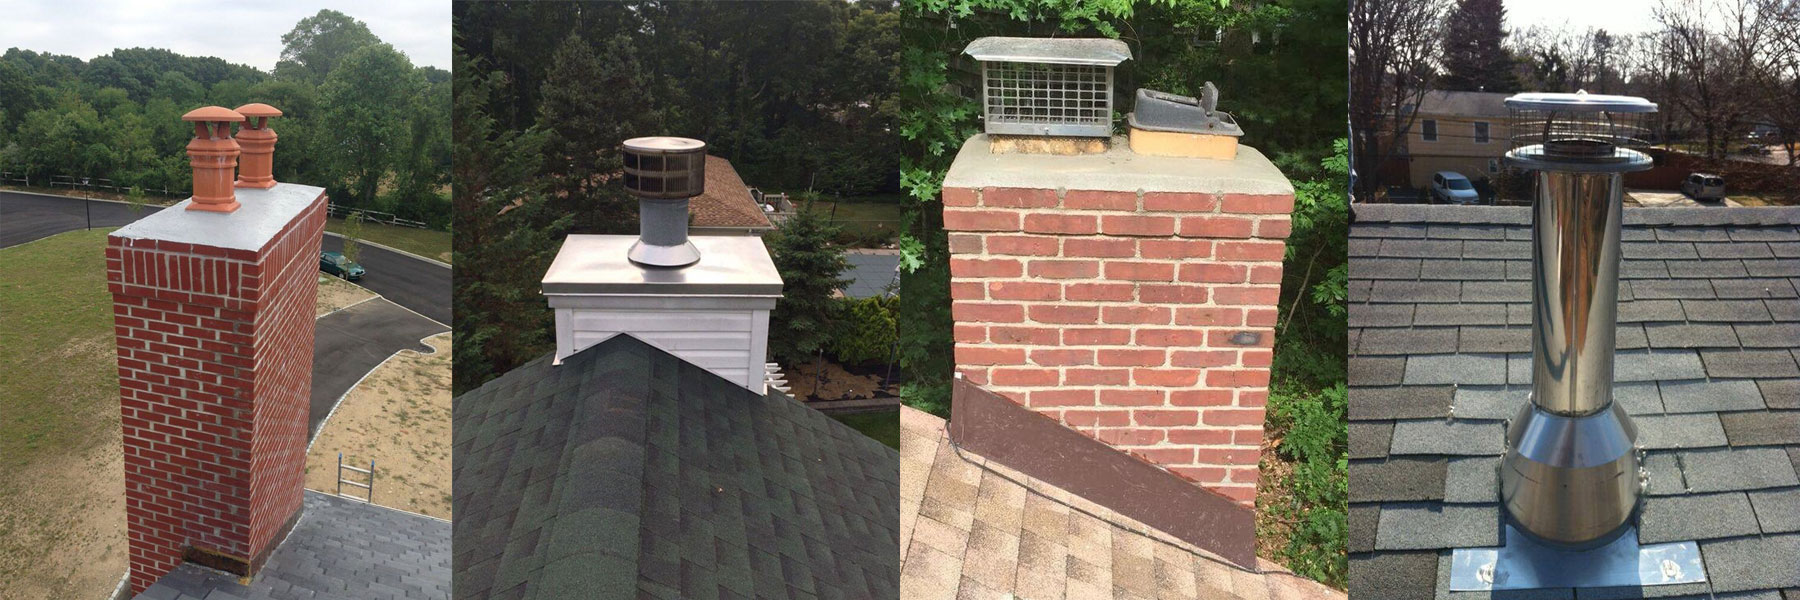 Done Right Chimneys Chimney Repair Long Island